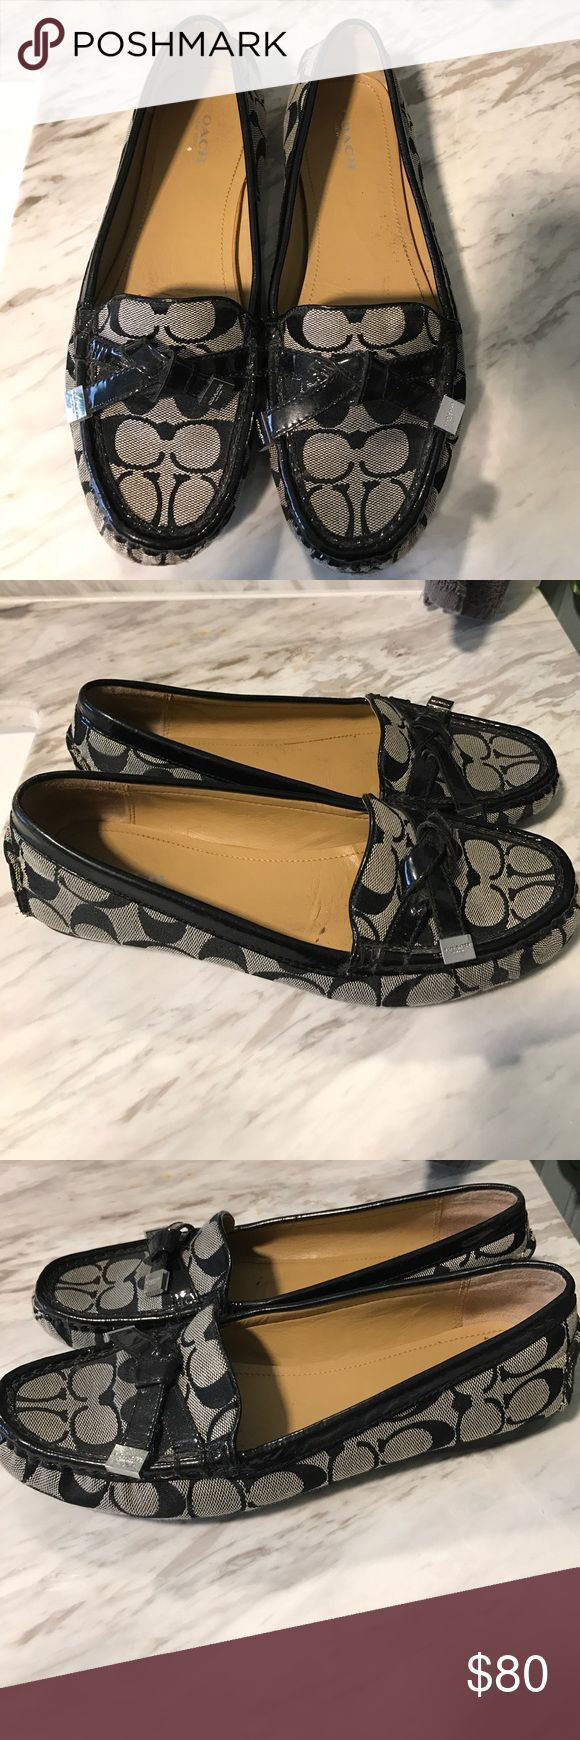 Coach Driving Loafers 9.5 These are in nice used condition. Only worn a handful of times, small scuffs on toe as shown in pics. Women's size 9.5 Coach Shoes Flats & Loafers